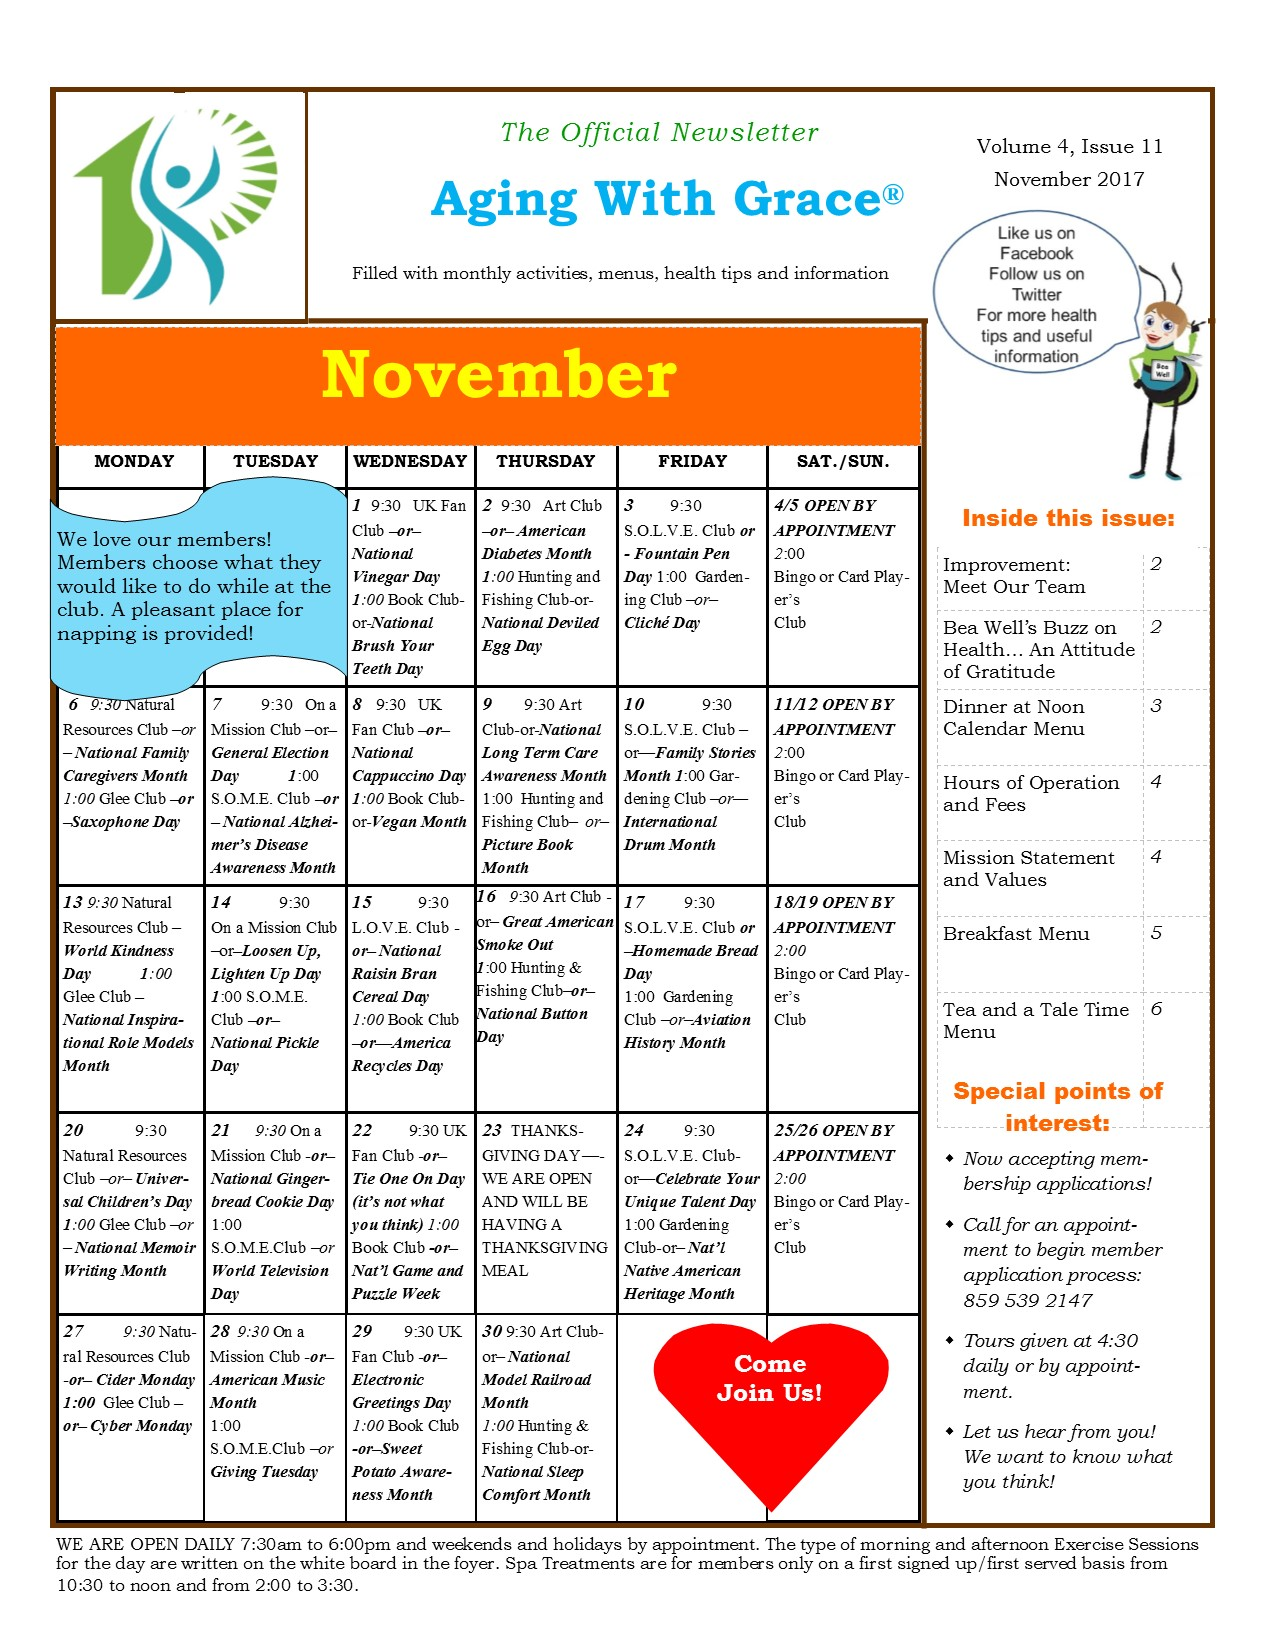 Aging With Grace Newsletter november 2017